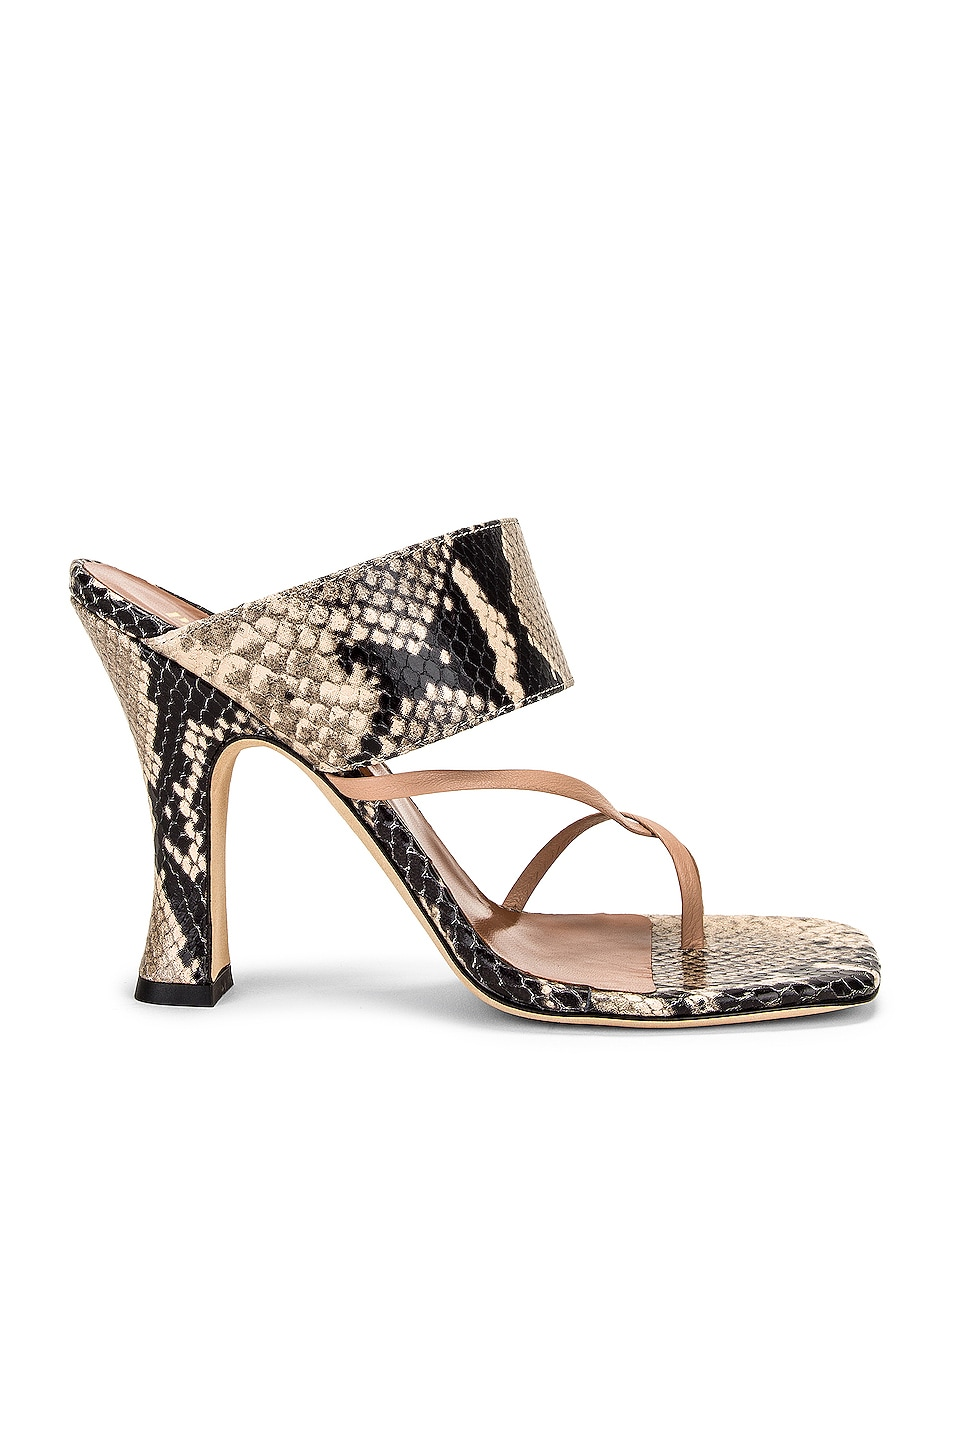 Image 1 of Paris Texas Python Print Crossover Thong Sandal in Stone & Nude